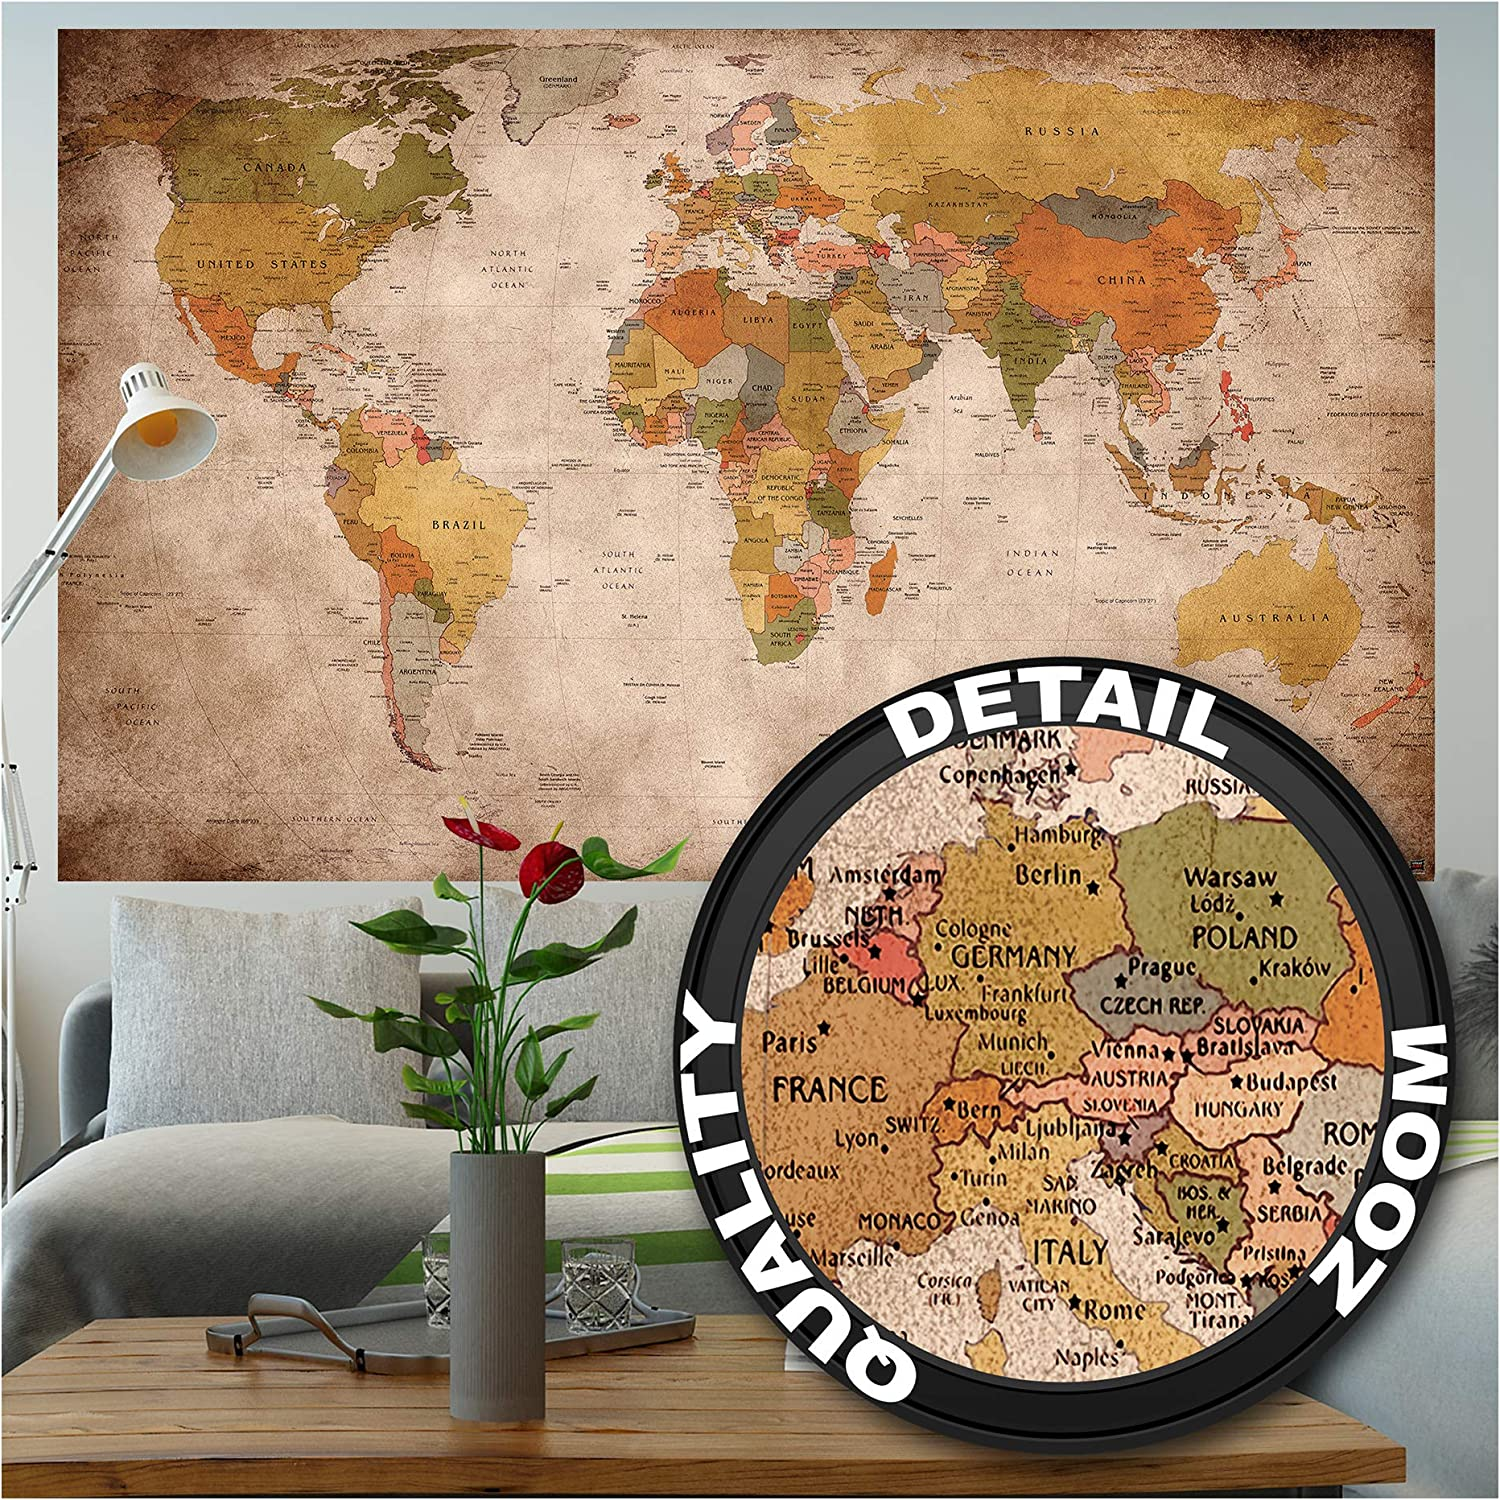 GREAT ART Poster – World Map Retro Look – Picture Continents Atlas Worldmap Earth Geography Atlas Old School Vintage Continent Globe Image Photo Decor Wall Mural (55x39.4in - 140x100cm)